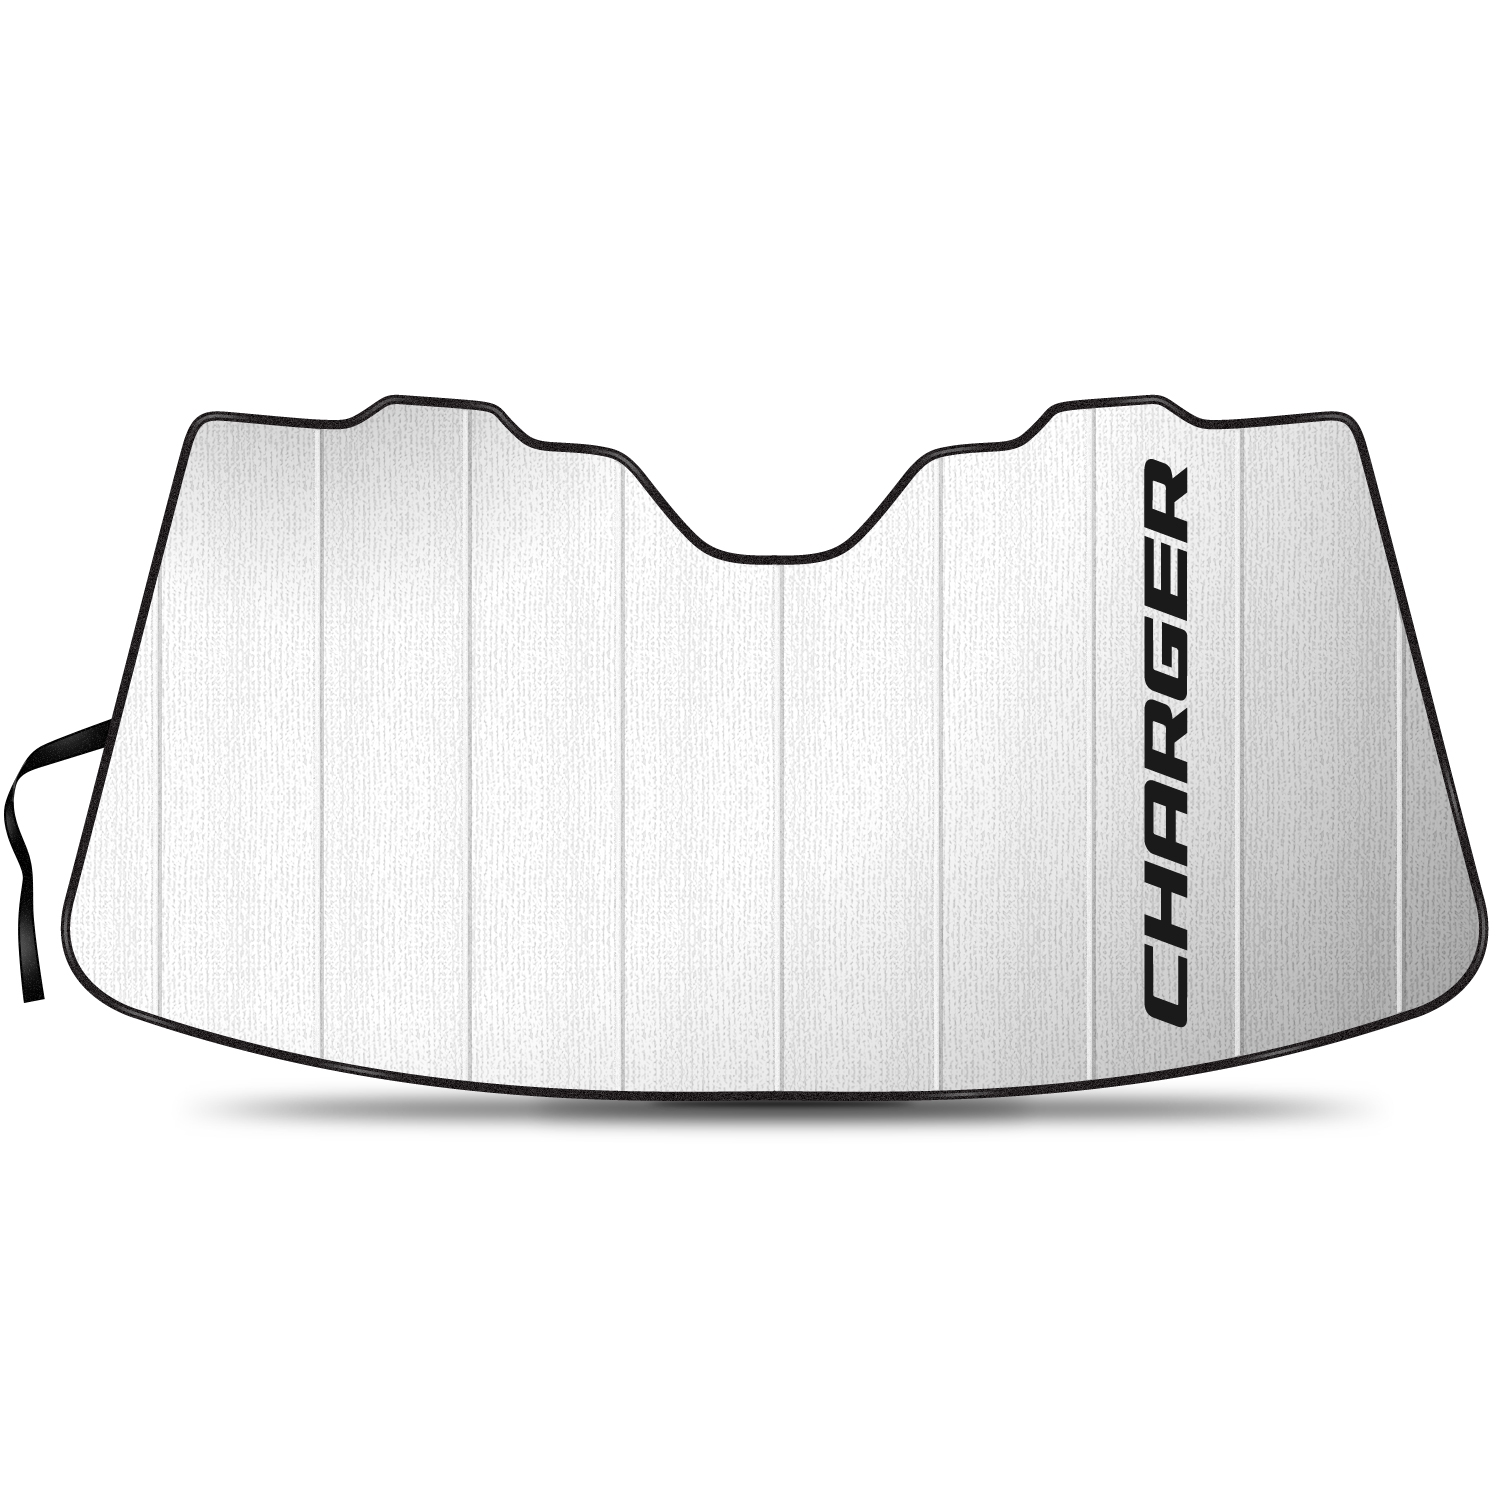 """Dodge Charger 55-1/2""""x 27"""" Stand Up Universal Fit Auto Windshield Sun Shade"""